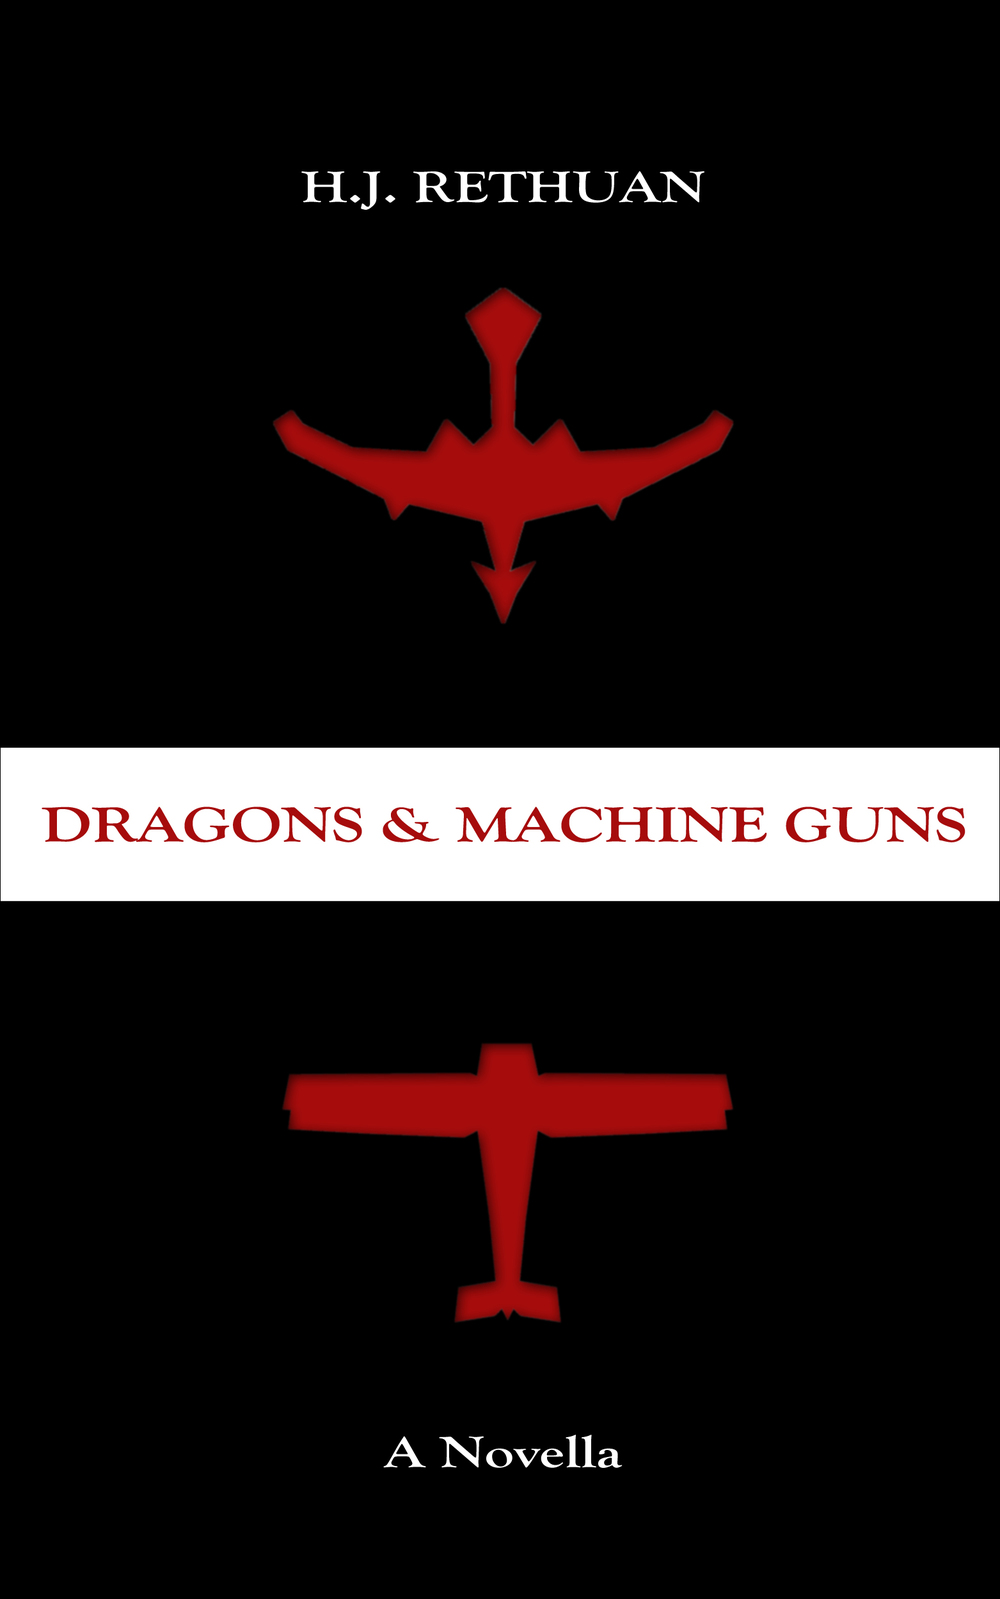 Dragons & Machine Guns